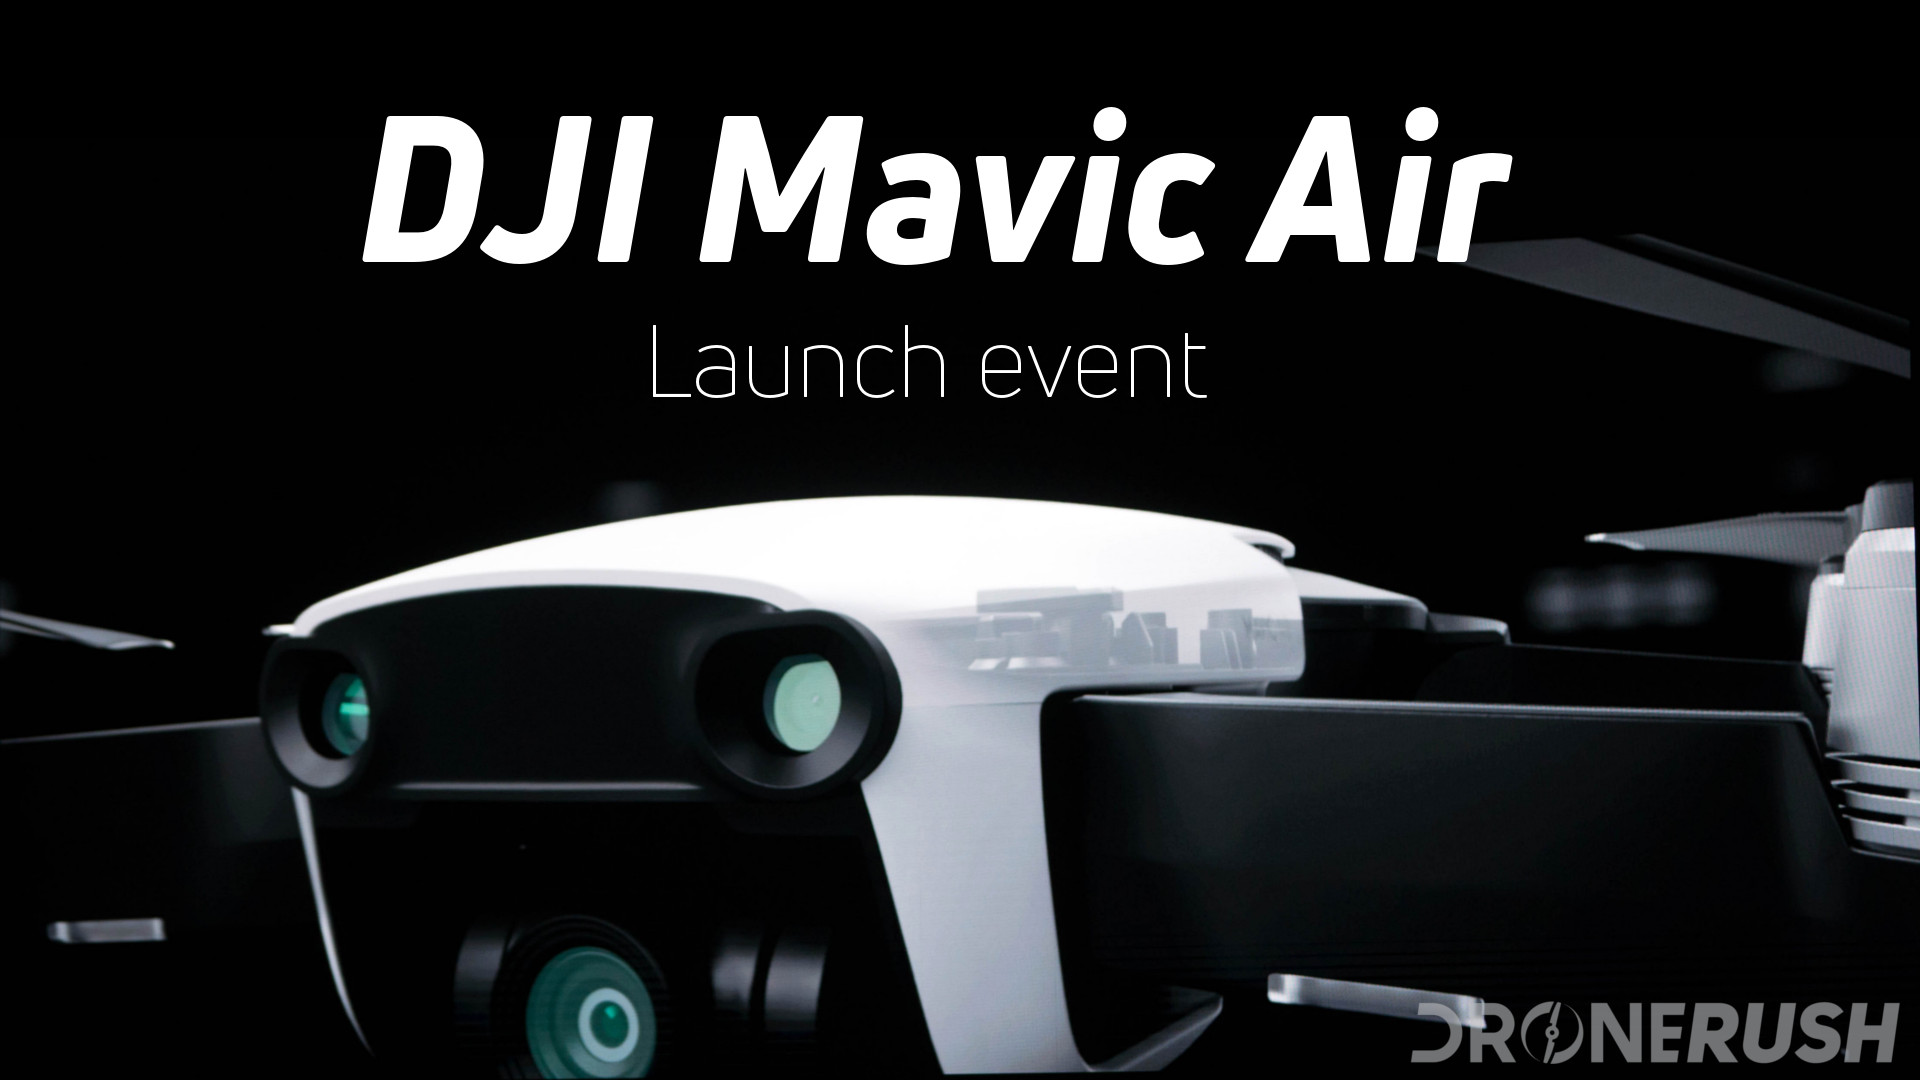 camera drone review with Dji Mavic Air Announced Dji Drone Specs Price Availability 11739 on Dji Mavic Air Announced Dji Drone Specs Price Availability 11739 further Oppo F5 Youth Price Sri Lanka also Sky Viper S1700 Stunt Drone Review besides Dji Spark Vs Mavic Pro further Apple Drone Concept.